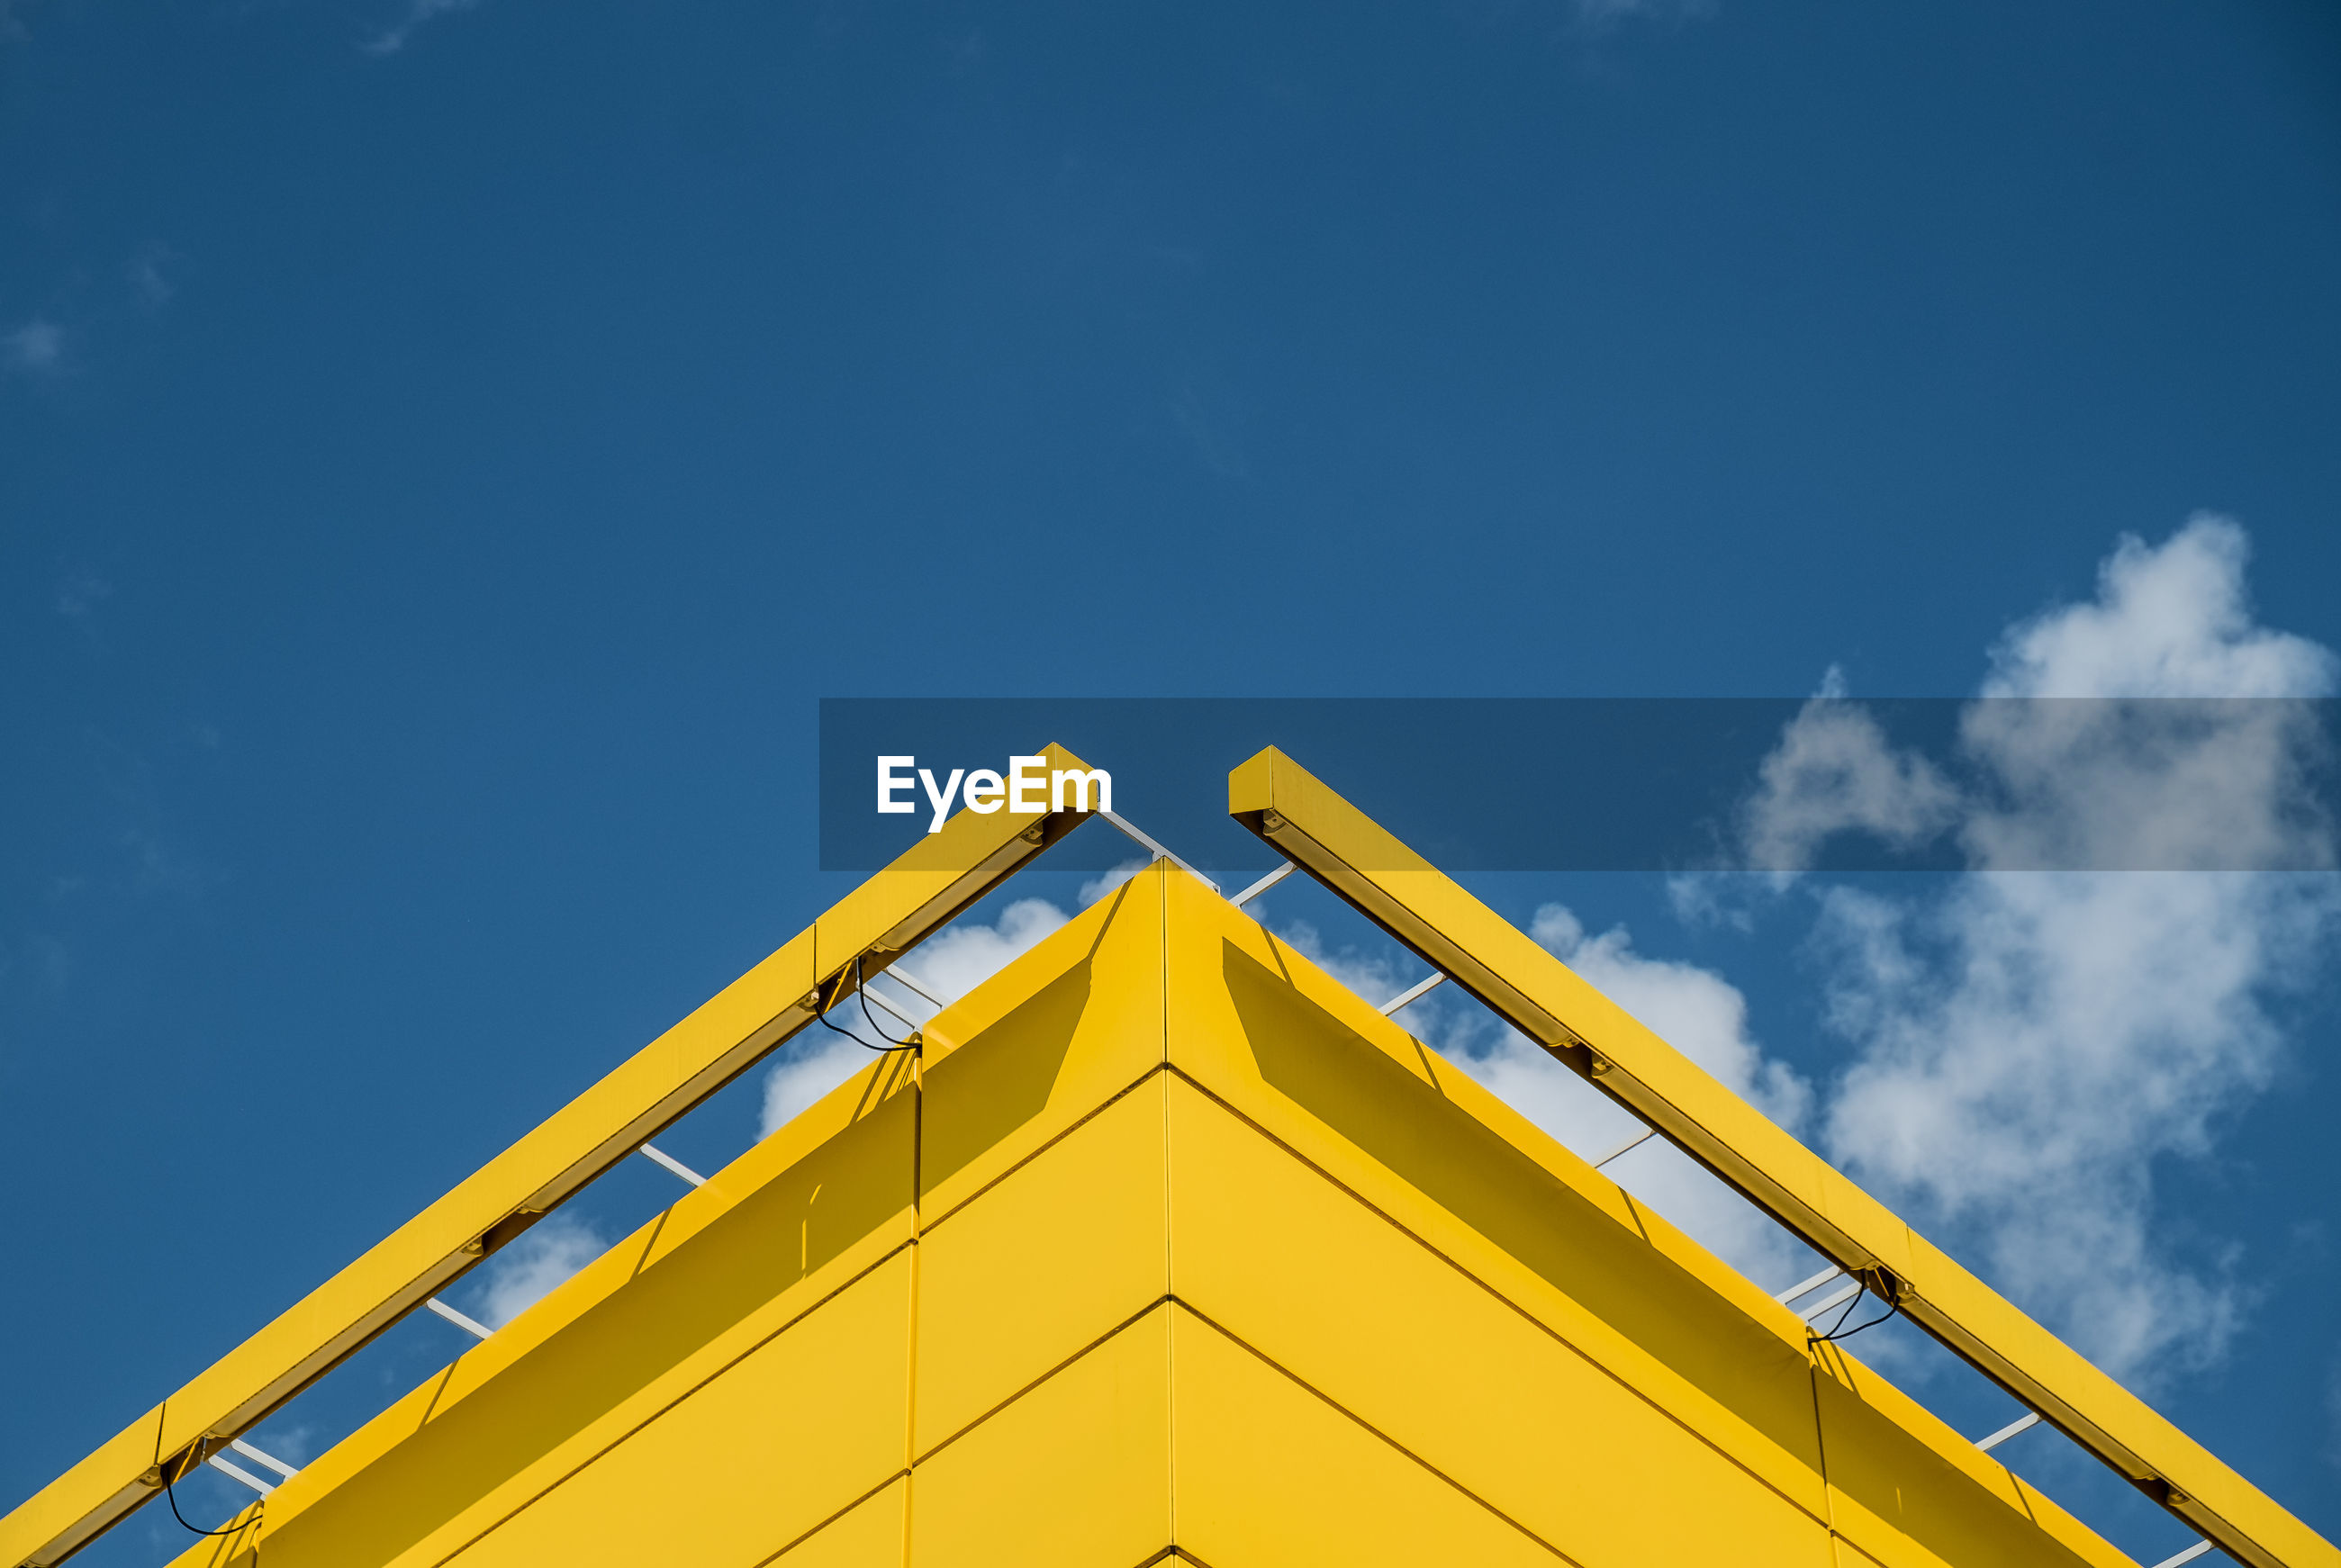 Low angle view of yellow built structure against blue sky